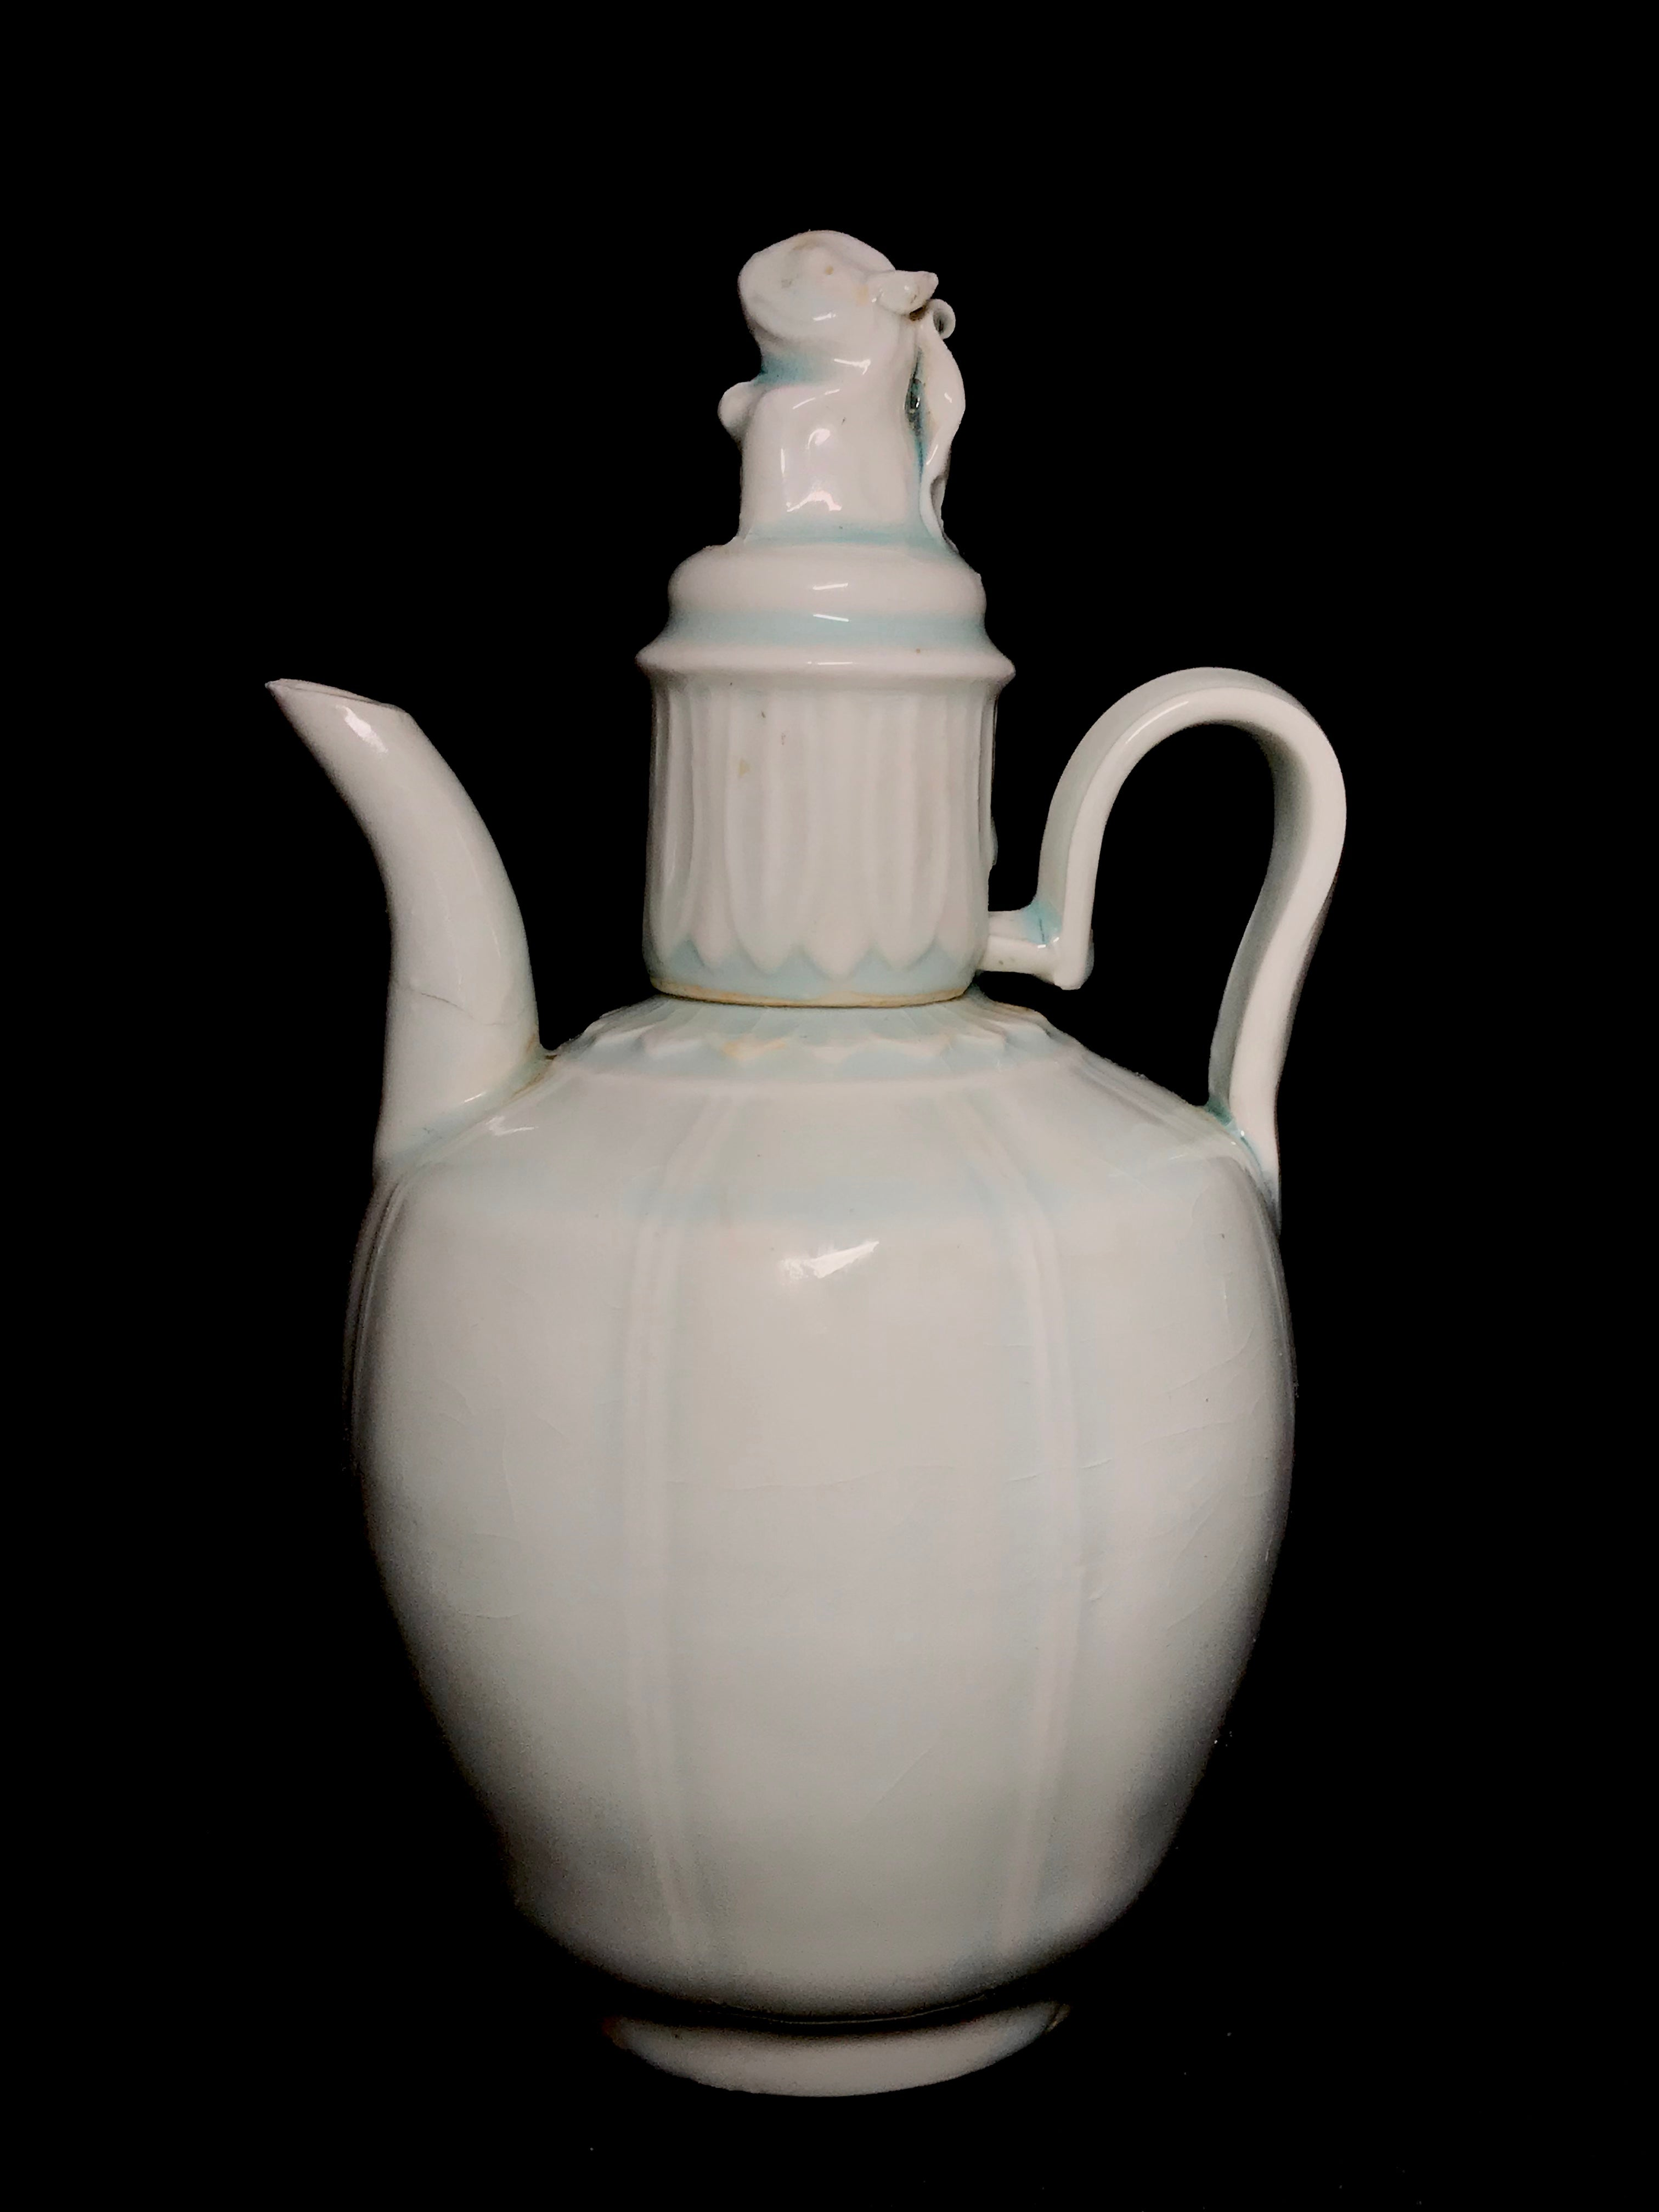 Song Dynasty Qingbai Ewer - 10 Dynasties